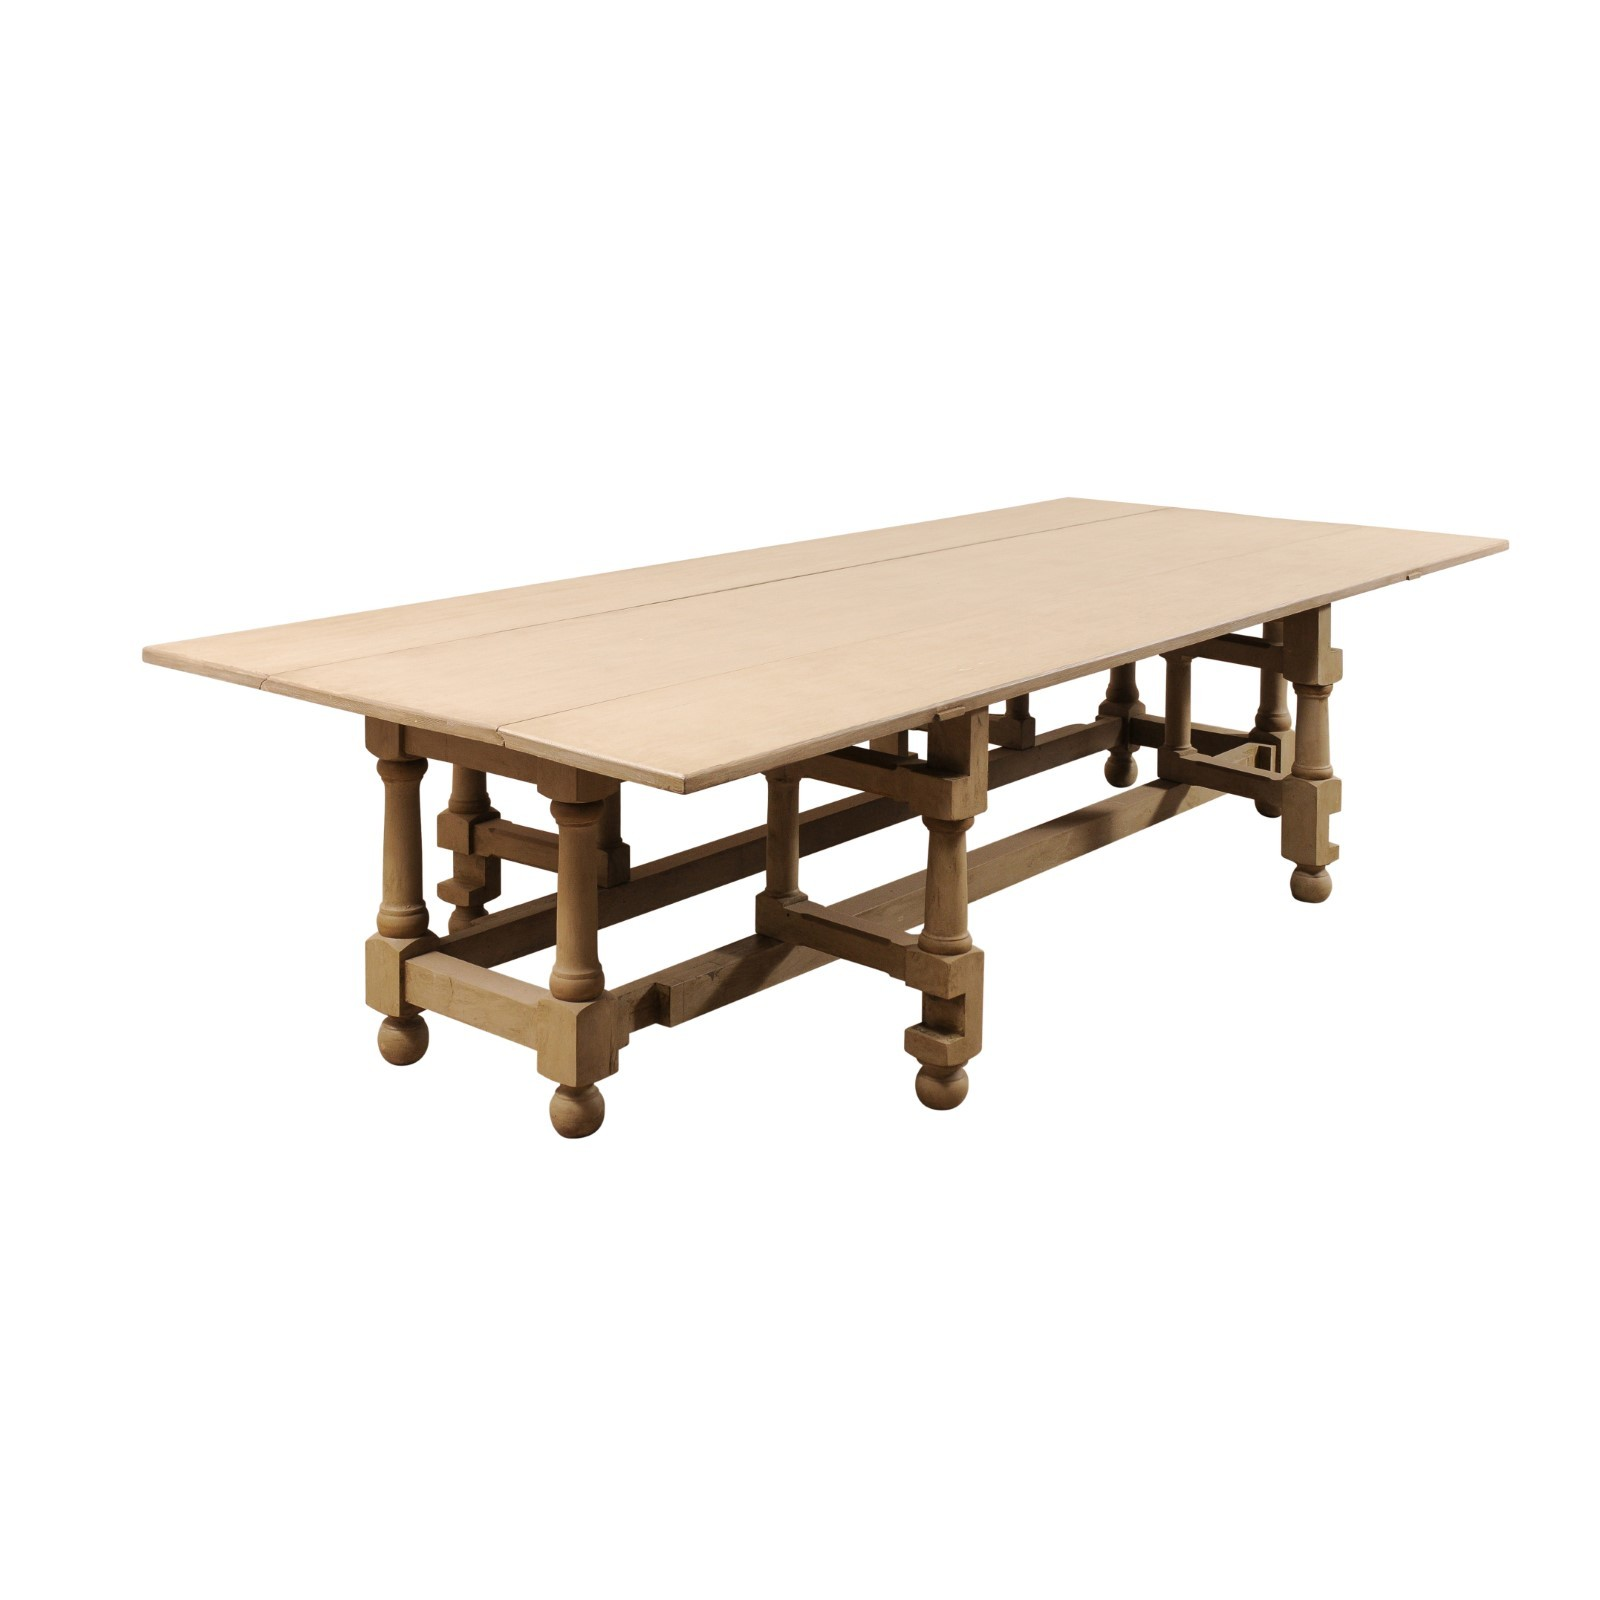 Large Double Gate-Leg Table, 10.5 ft